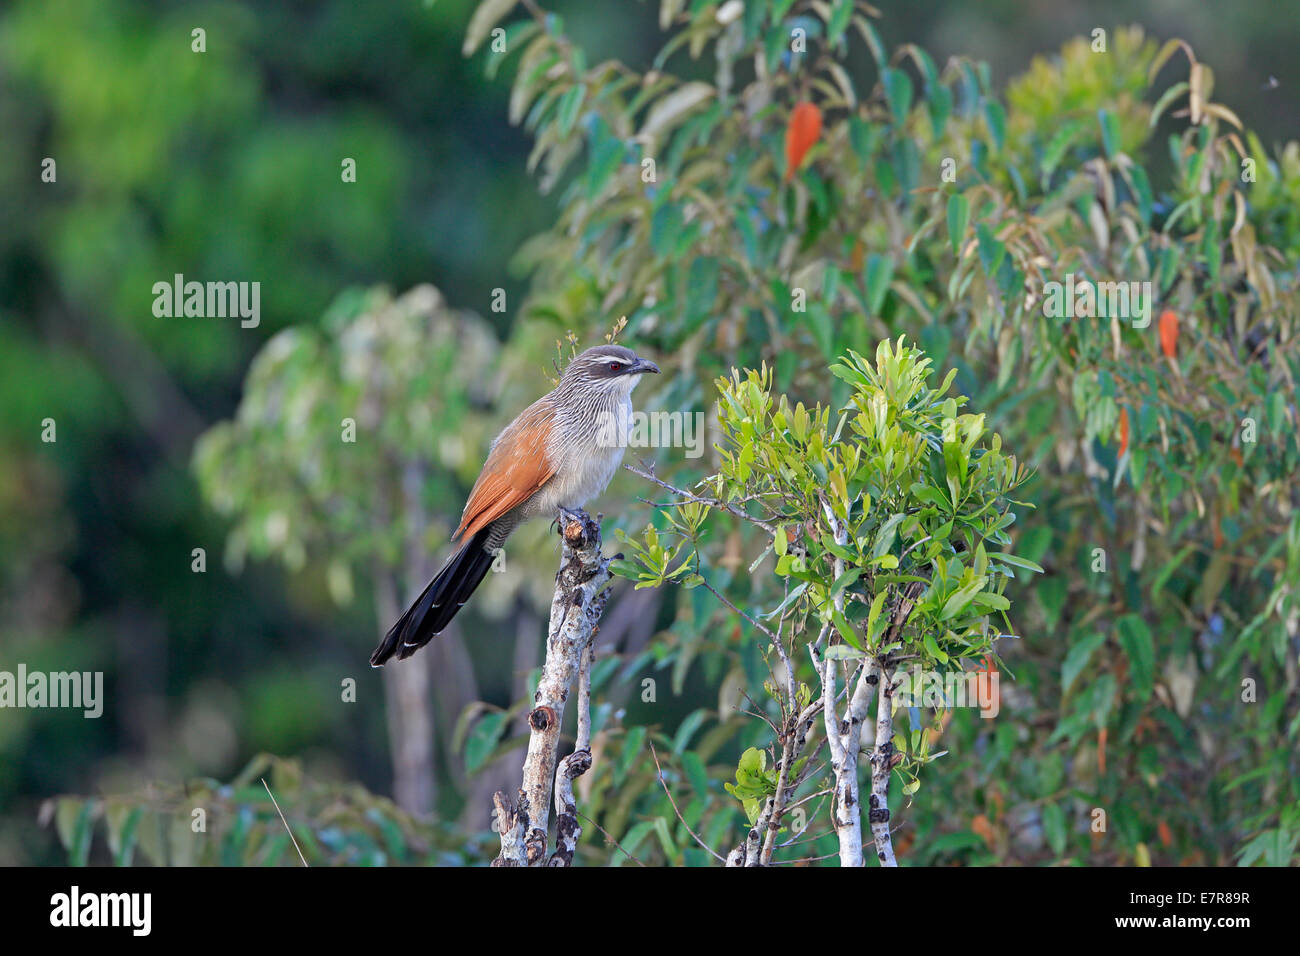 White-browed Coucal perched on the Masai Mara - Stock Image